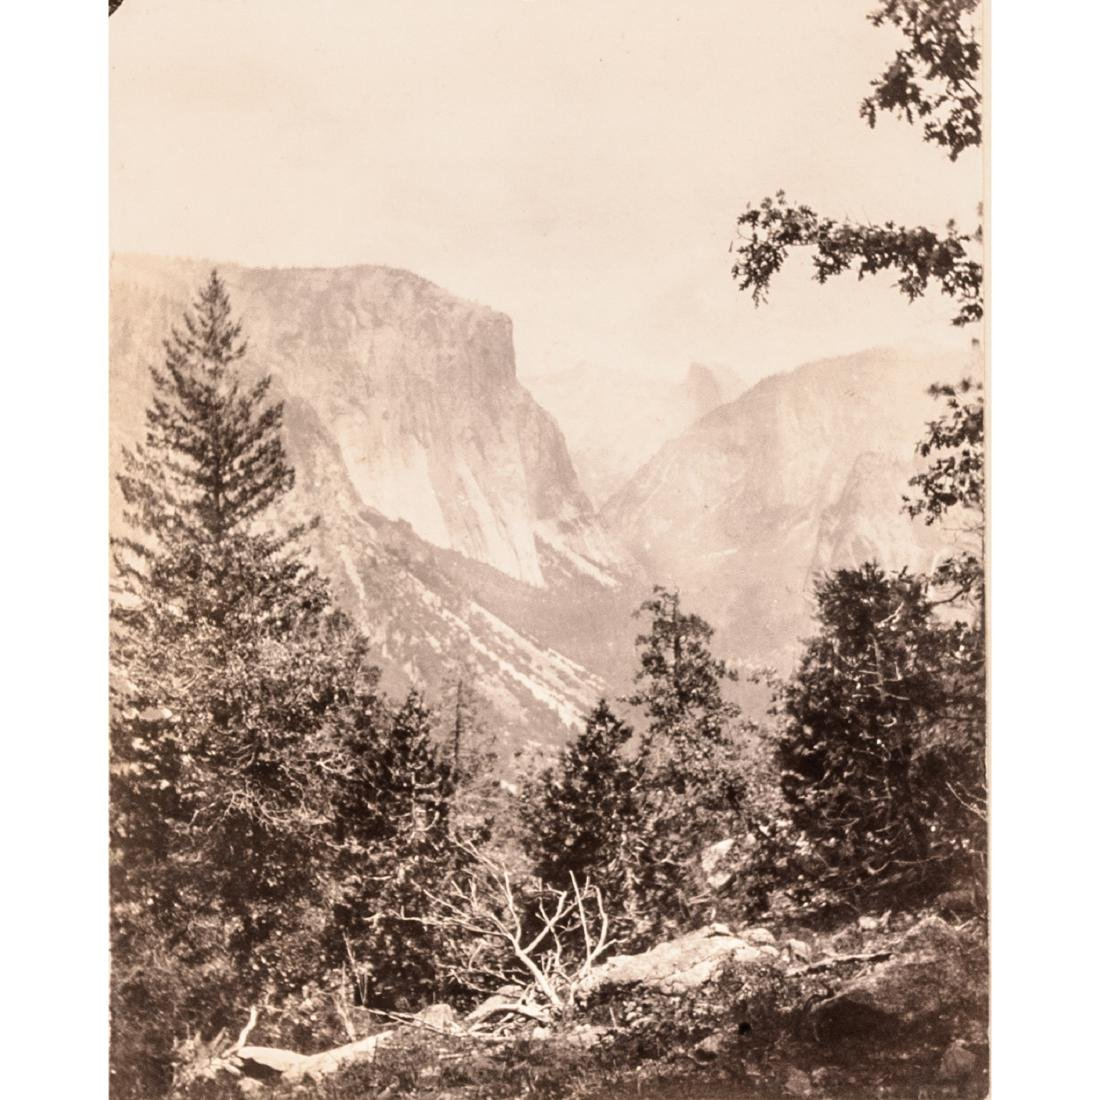 1882 Album 25 Historical Yosemite Calif. Photos - 9